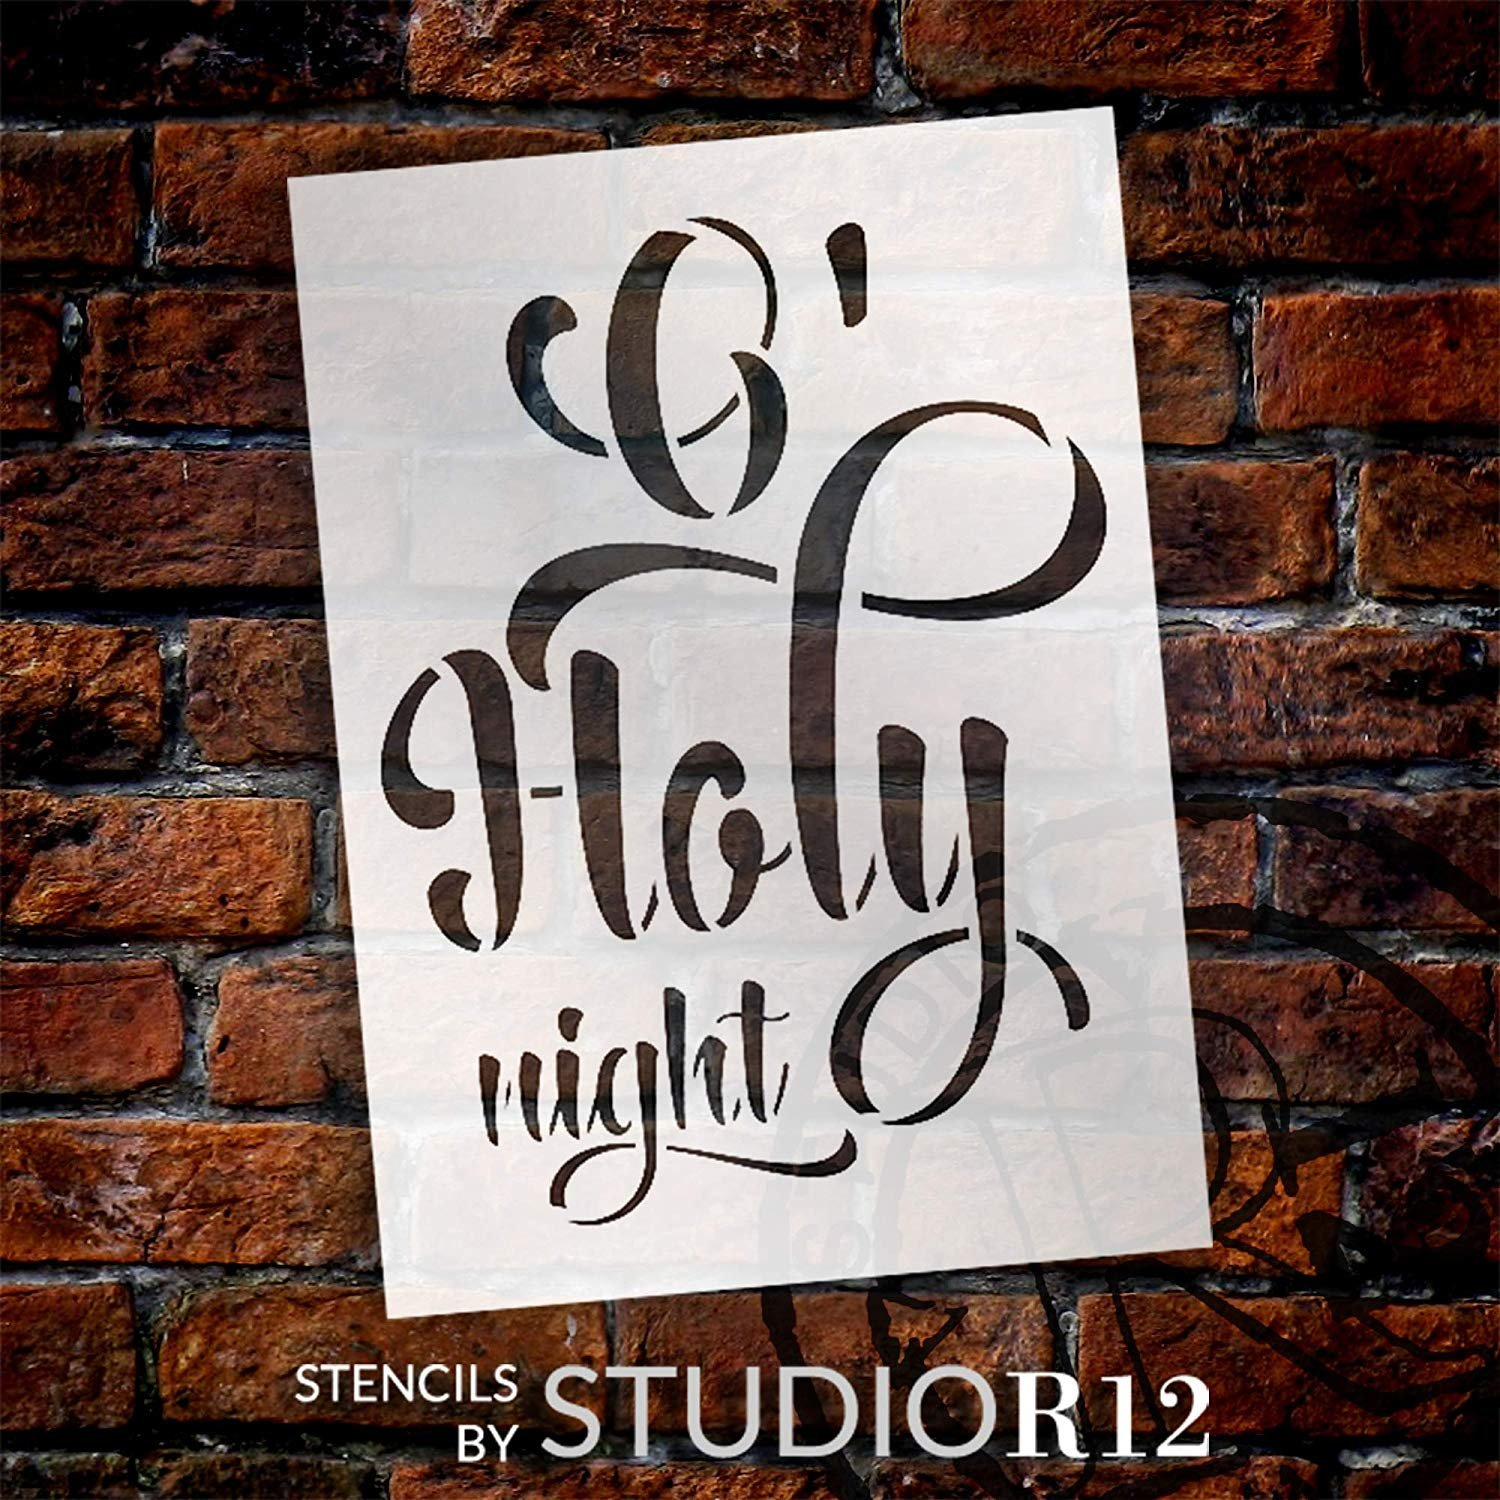 O Holy Night Stencil StudioR12 | Christian Hymn Song Lyric Quote | DIY Cursive Script Christmas Holiday Home Decor | Craft & Paint Wood Signs | Reusable Mylar Template | Select Size